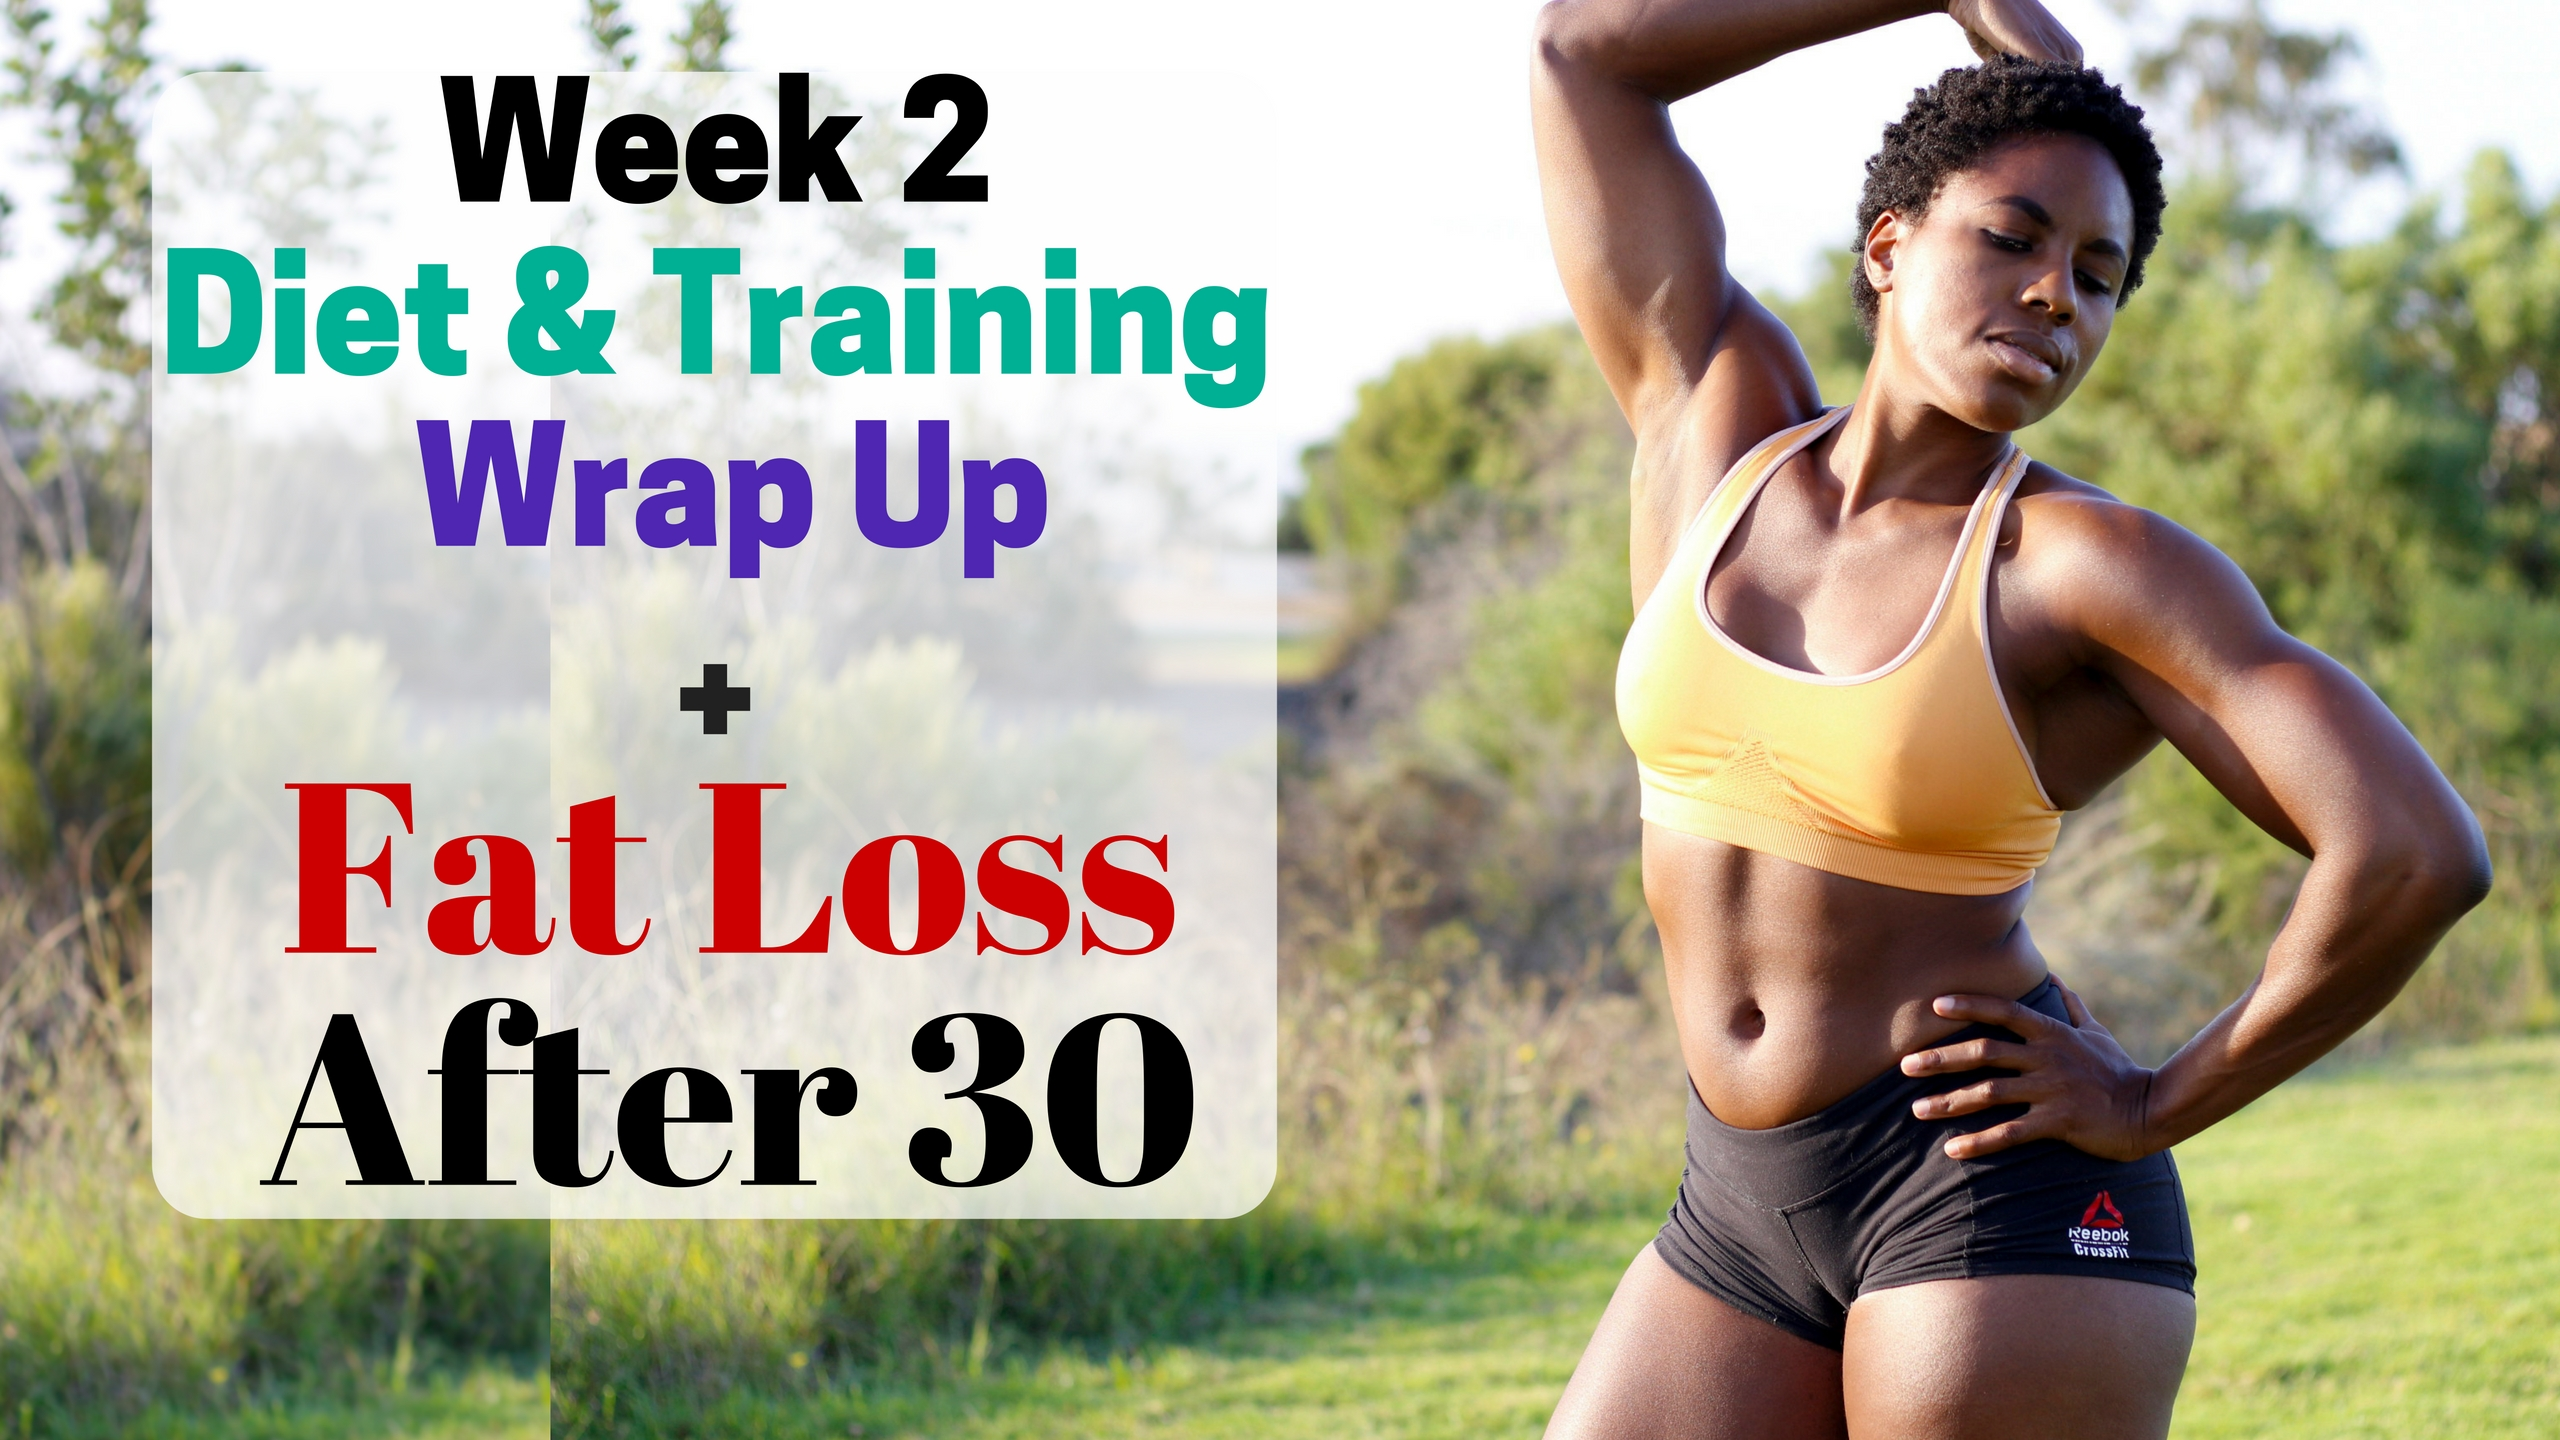 (Video) Week 2 Wrap Up + Body Changes and Fat Loss After 30